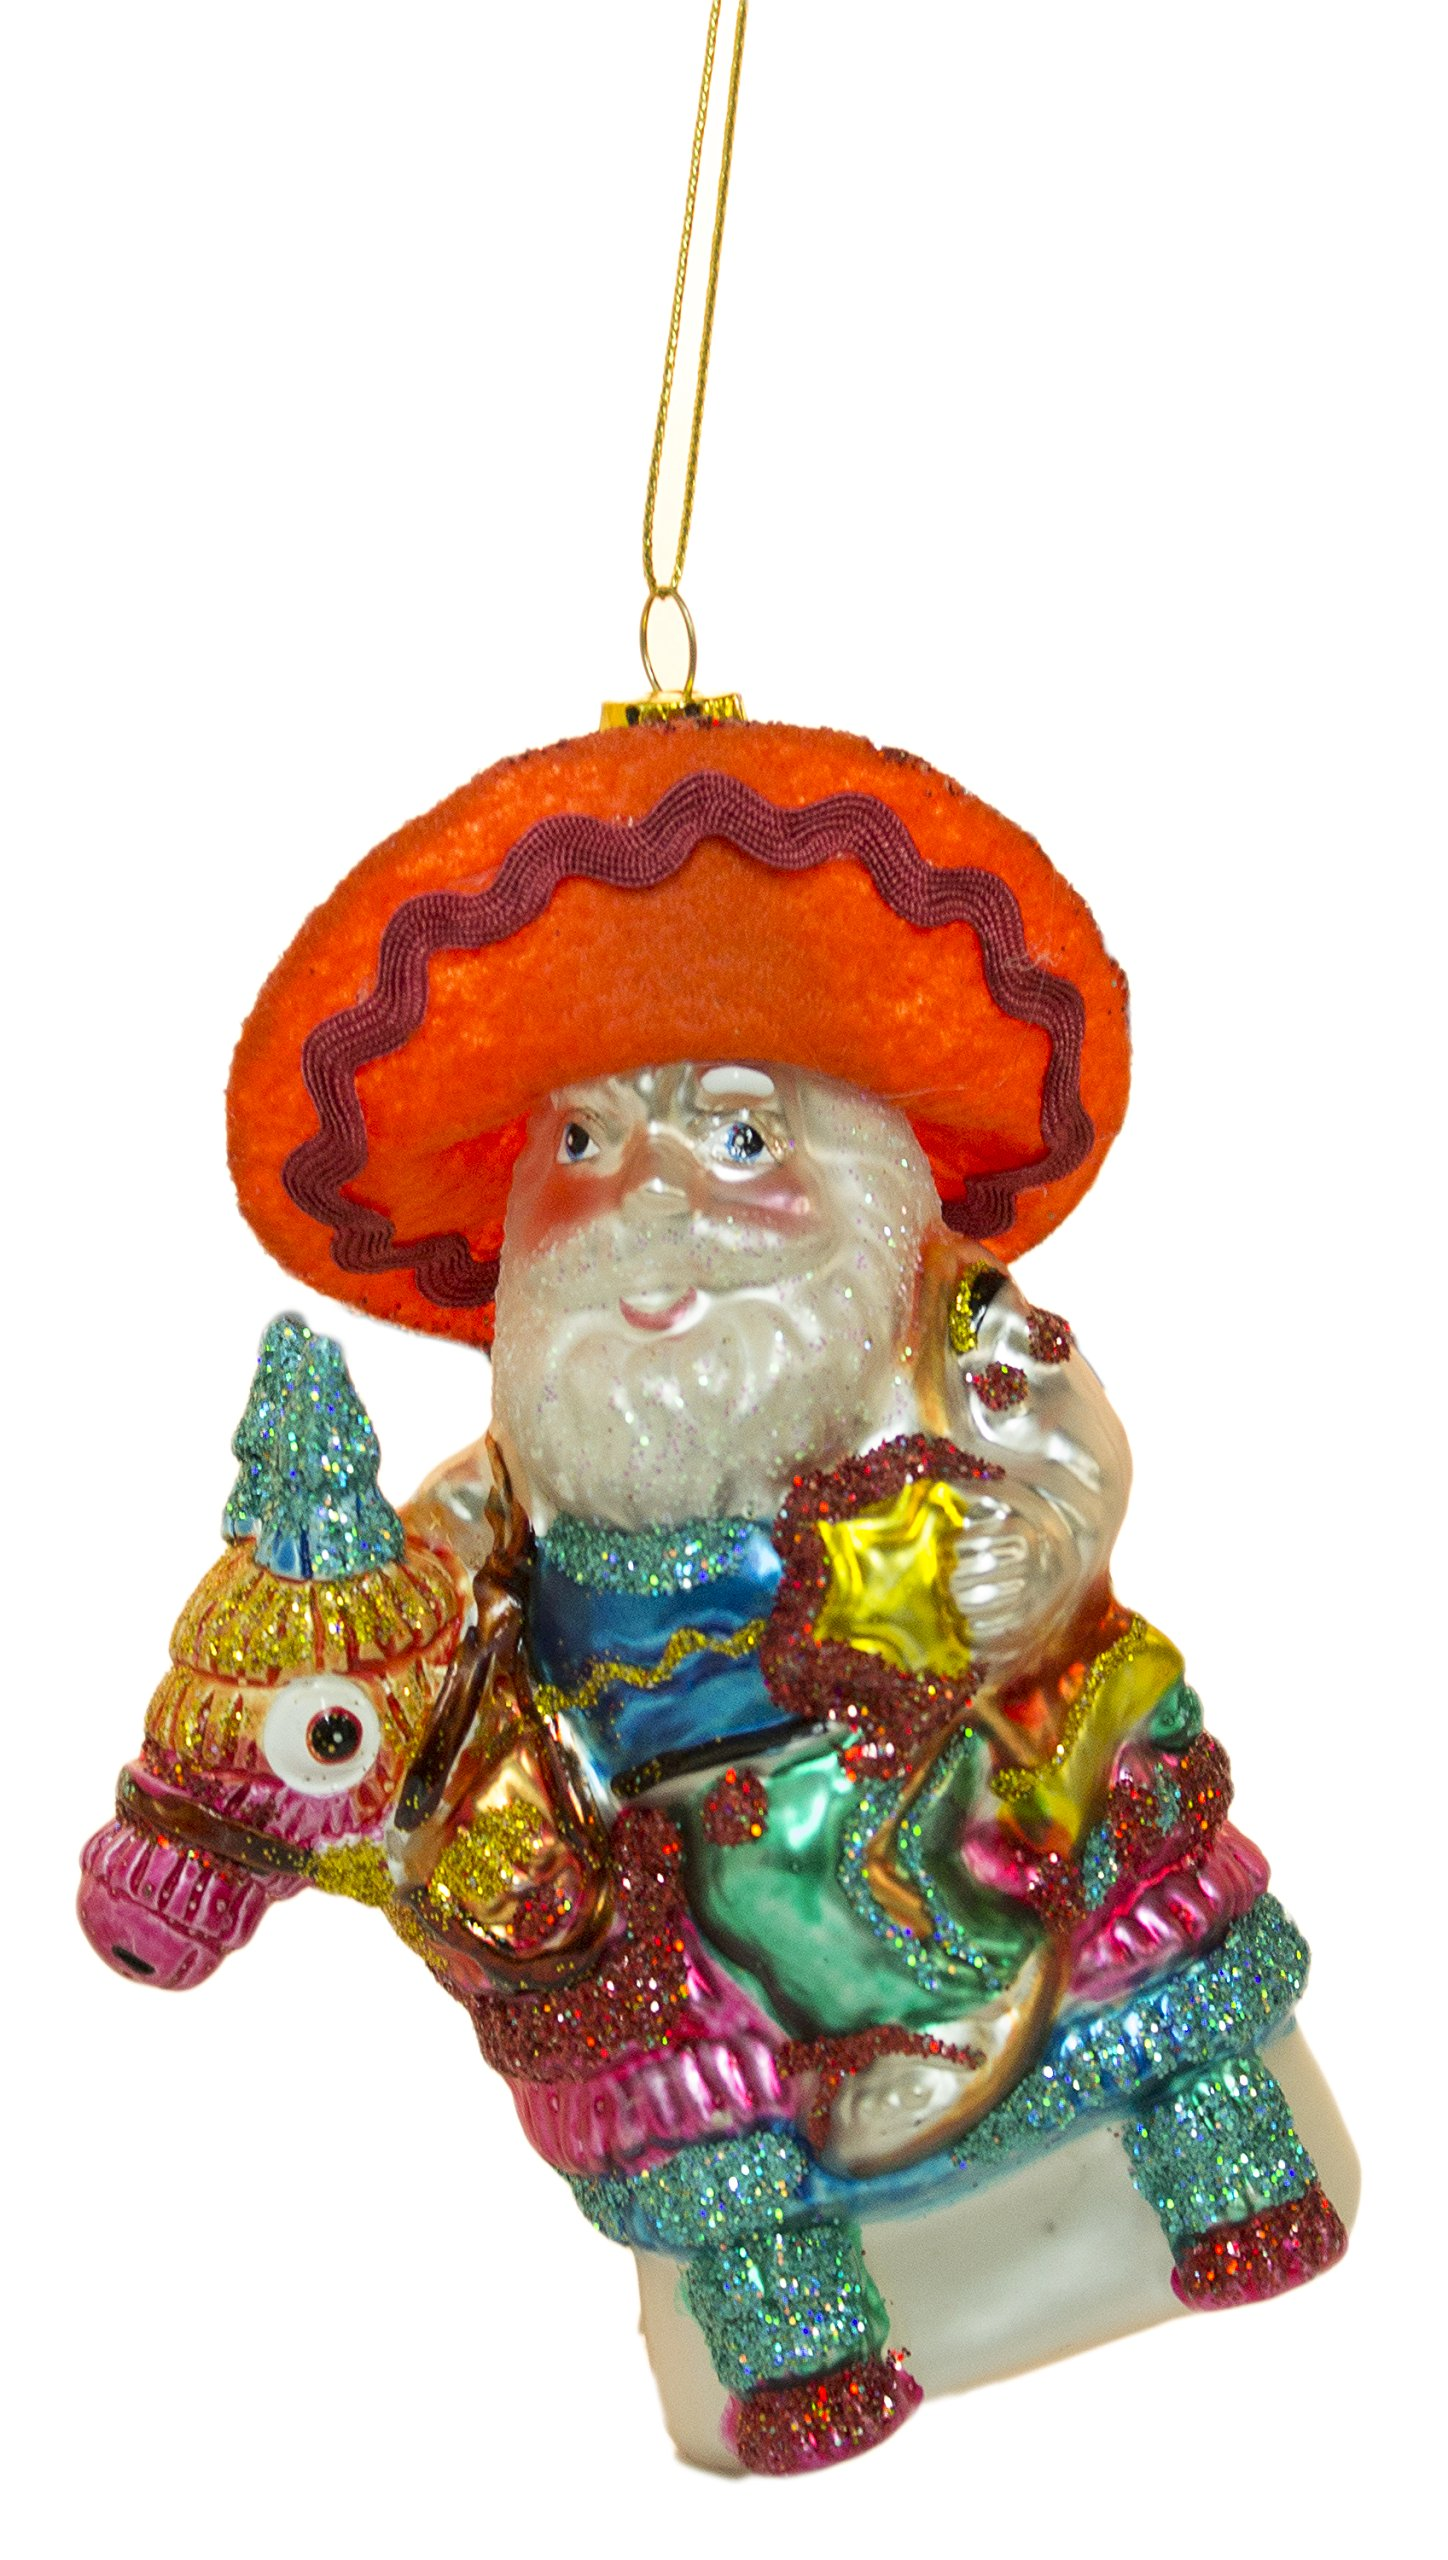 5 Inch Blown Glass Santa On Pinata Christmas/ Everyday Ornament